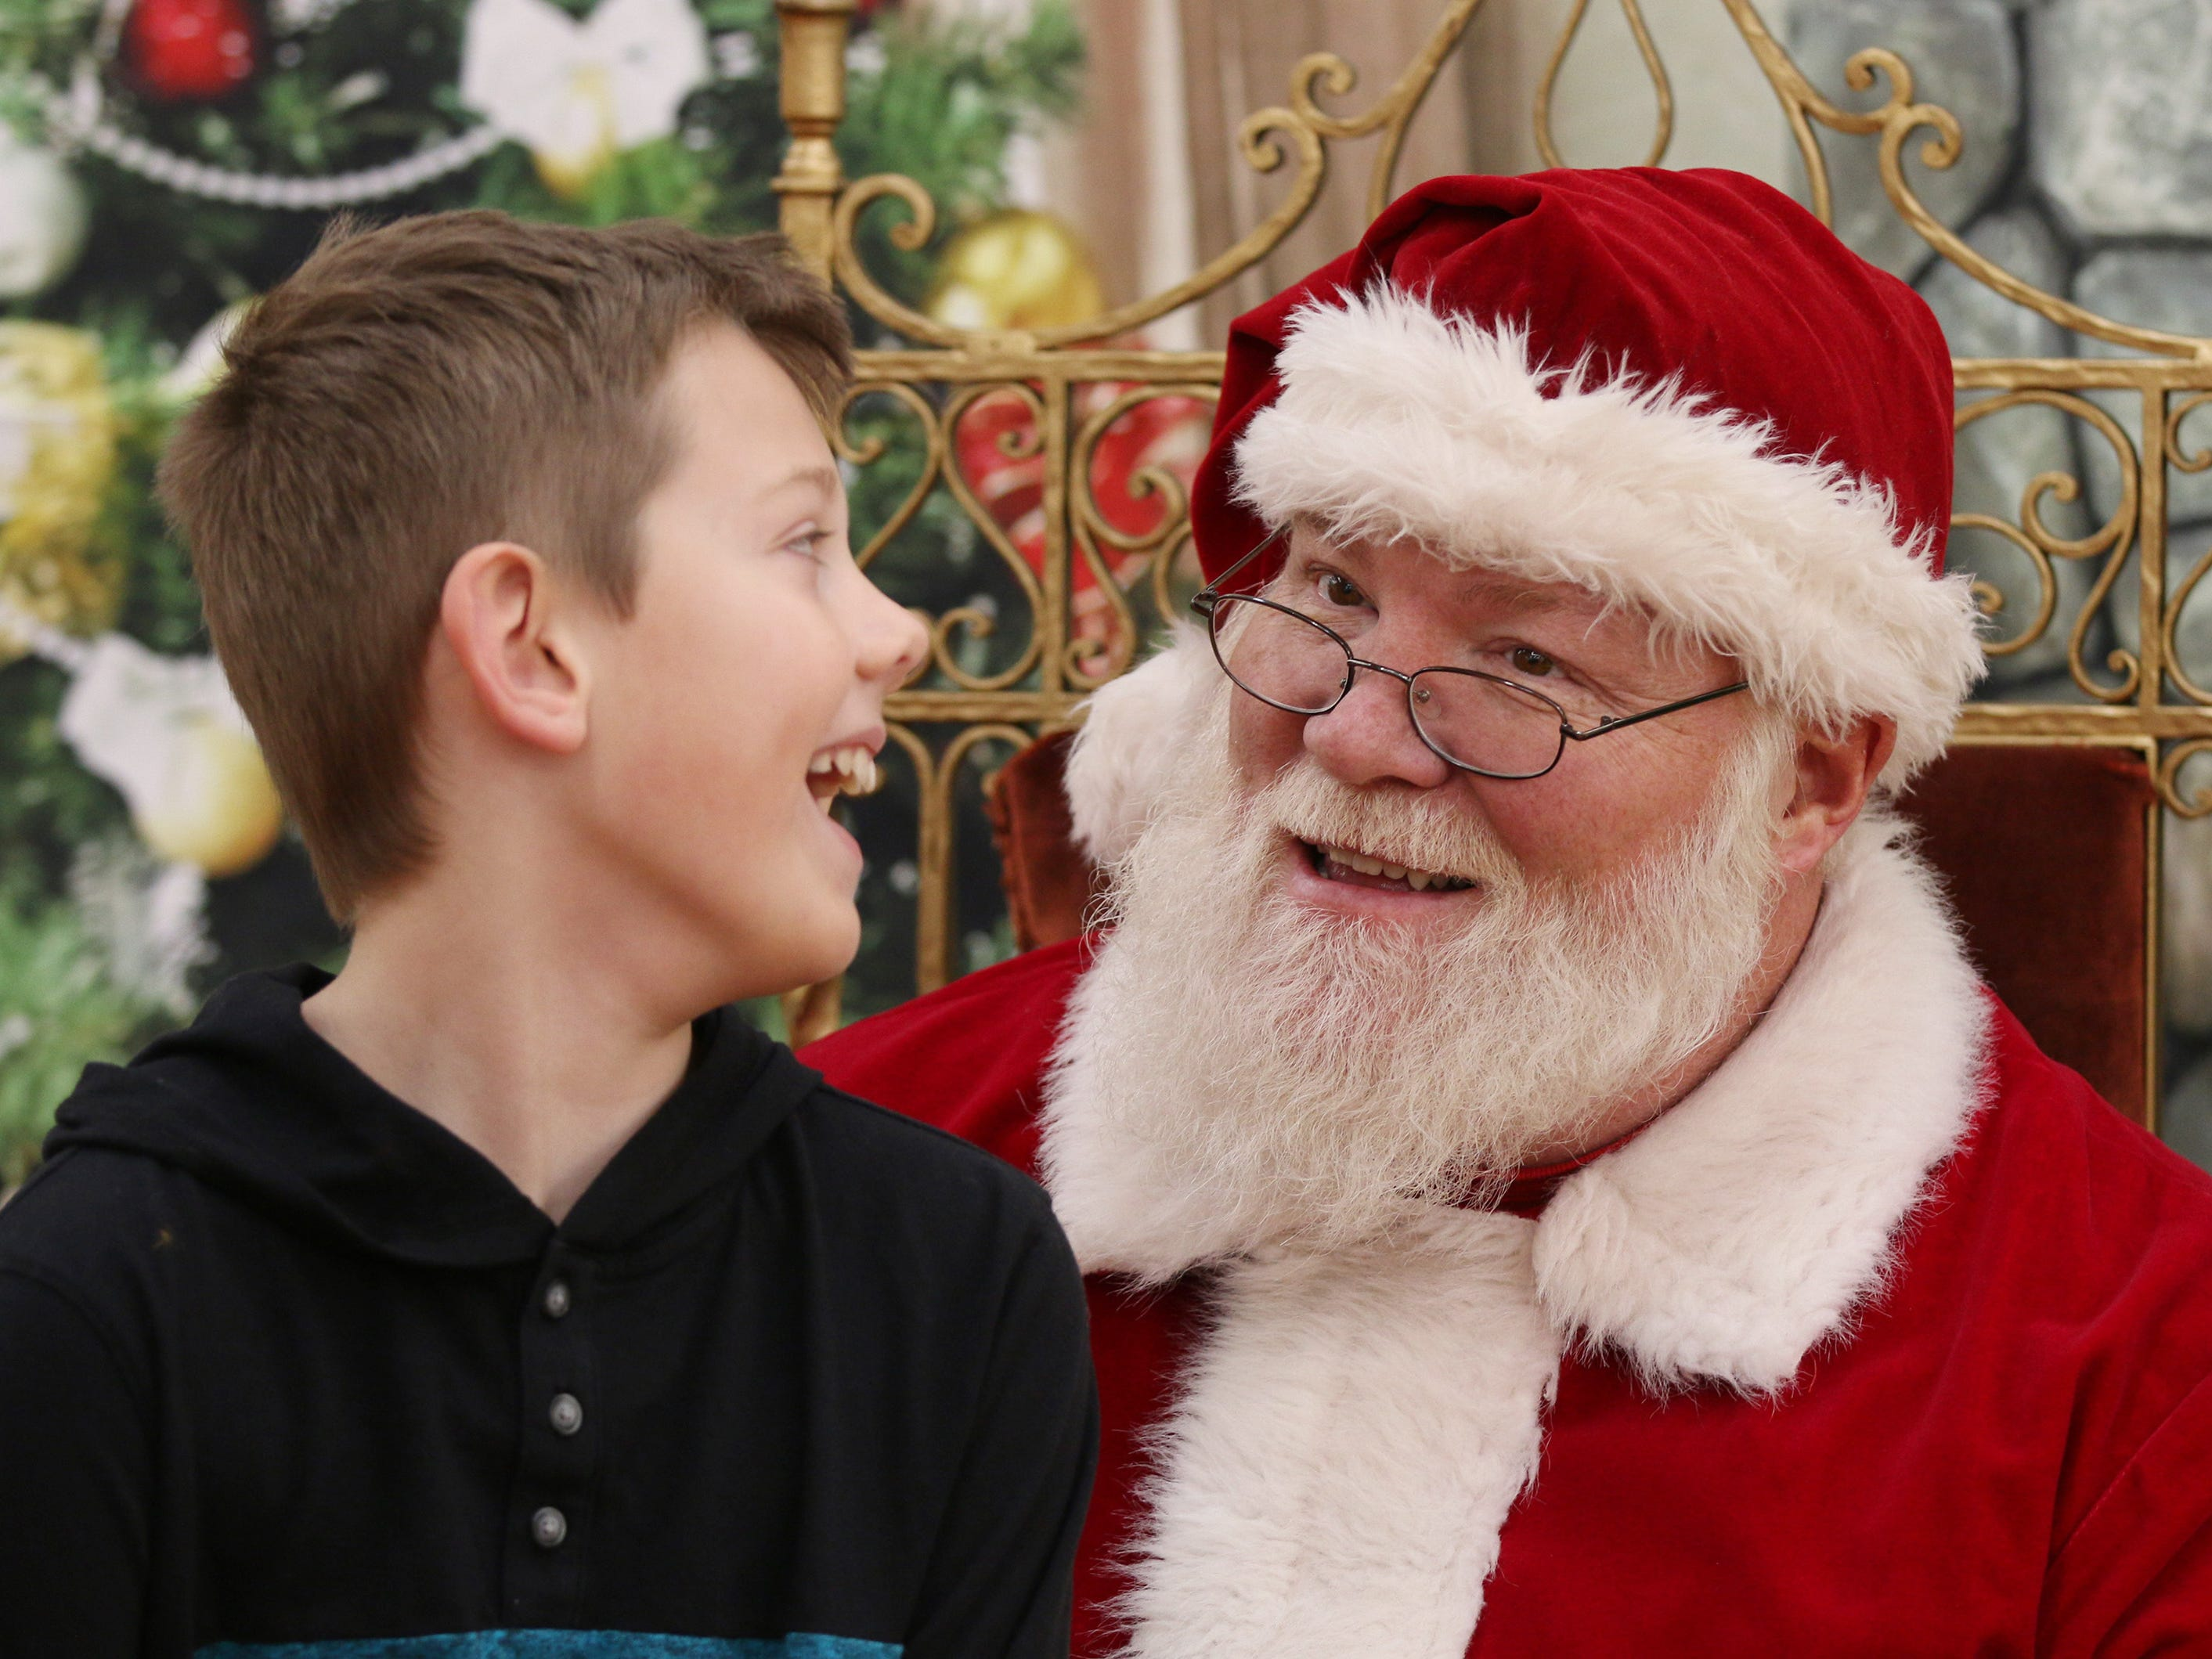 Marcus Rekowski, 8, of Hingham, Wis., share a laugh with Santa Claus at Festival Foods, Saturday November 17, 2018, in Sheboygan, Wis. Santa was part of the Salvation Army's Red Kettle Campaign kickoff.